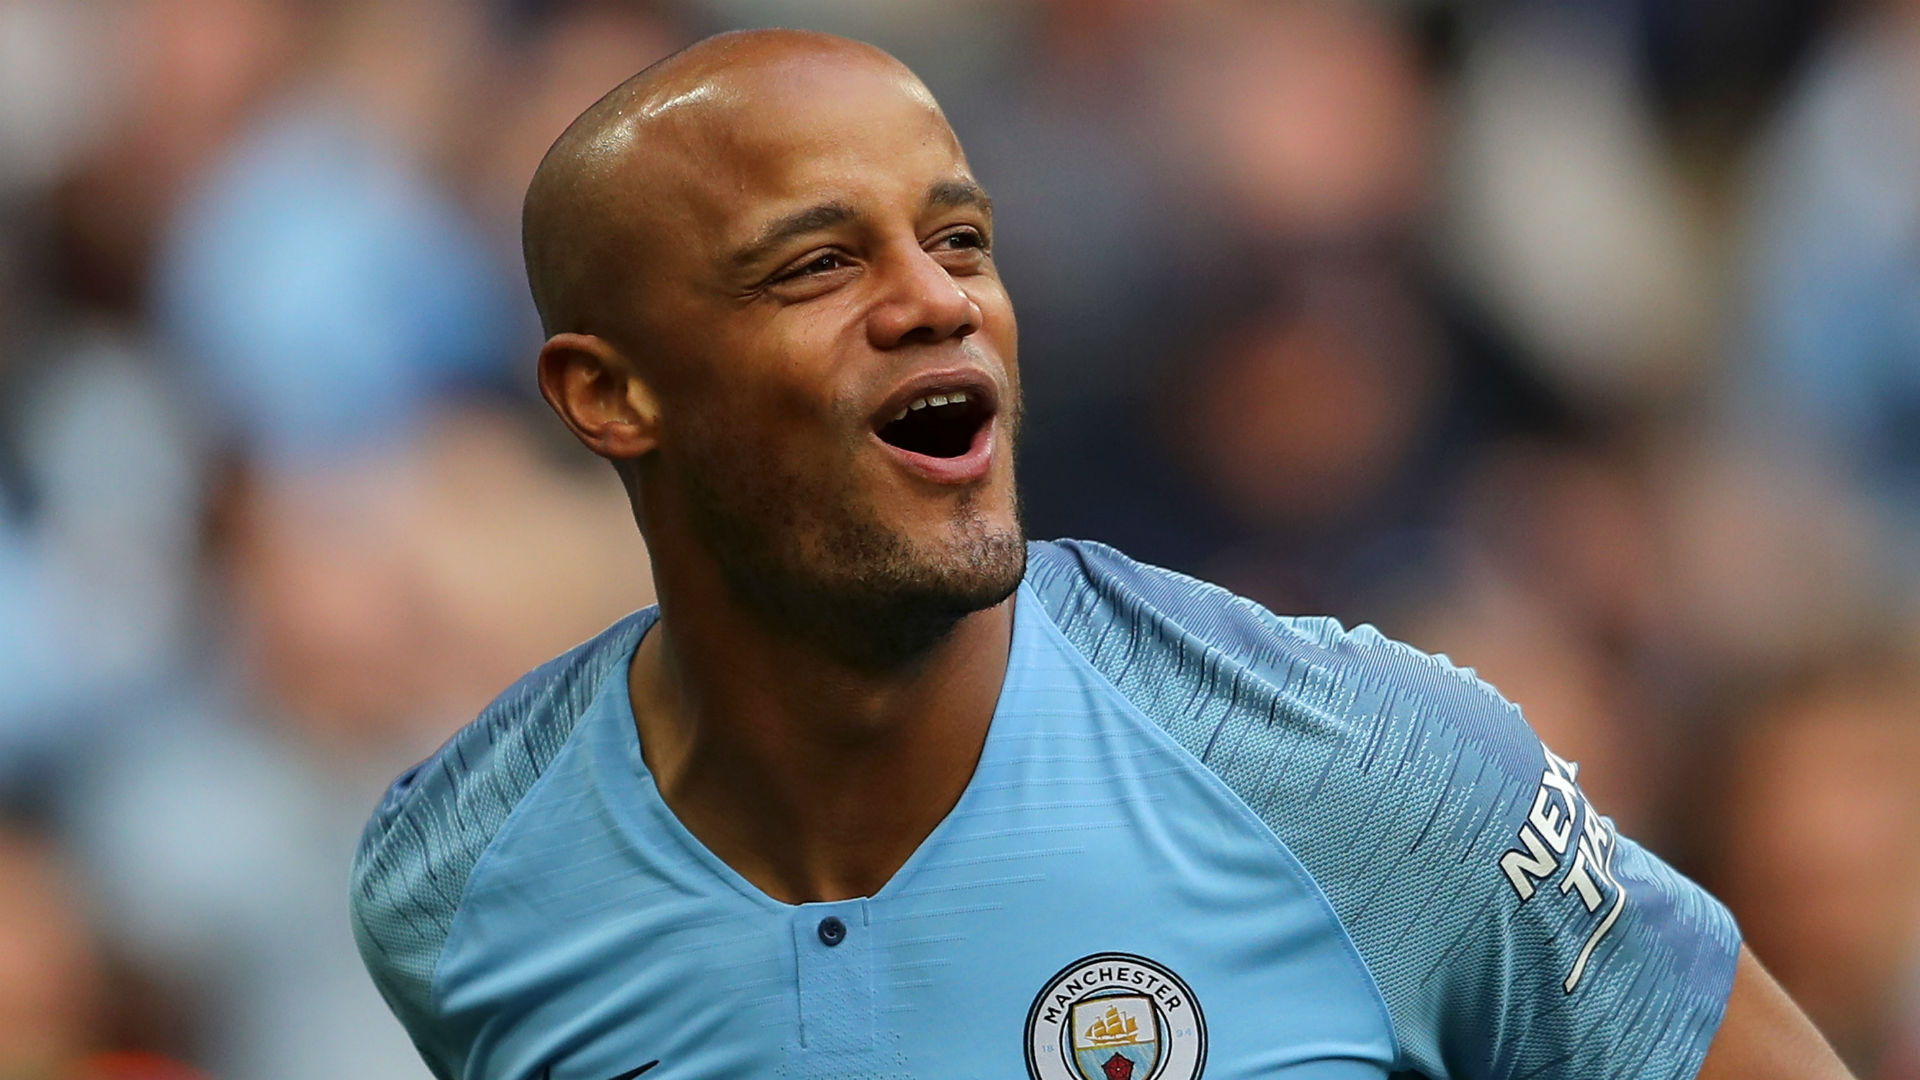 Kompany admits he could have left Man City much sooner and chased more titles